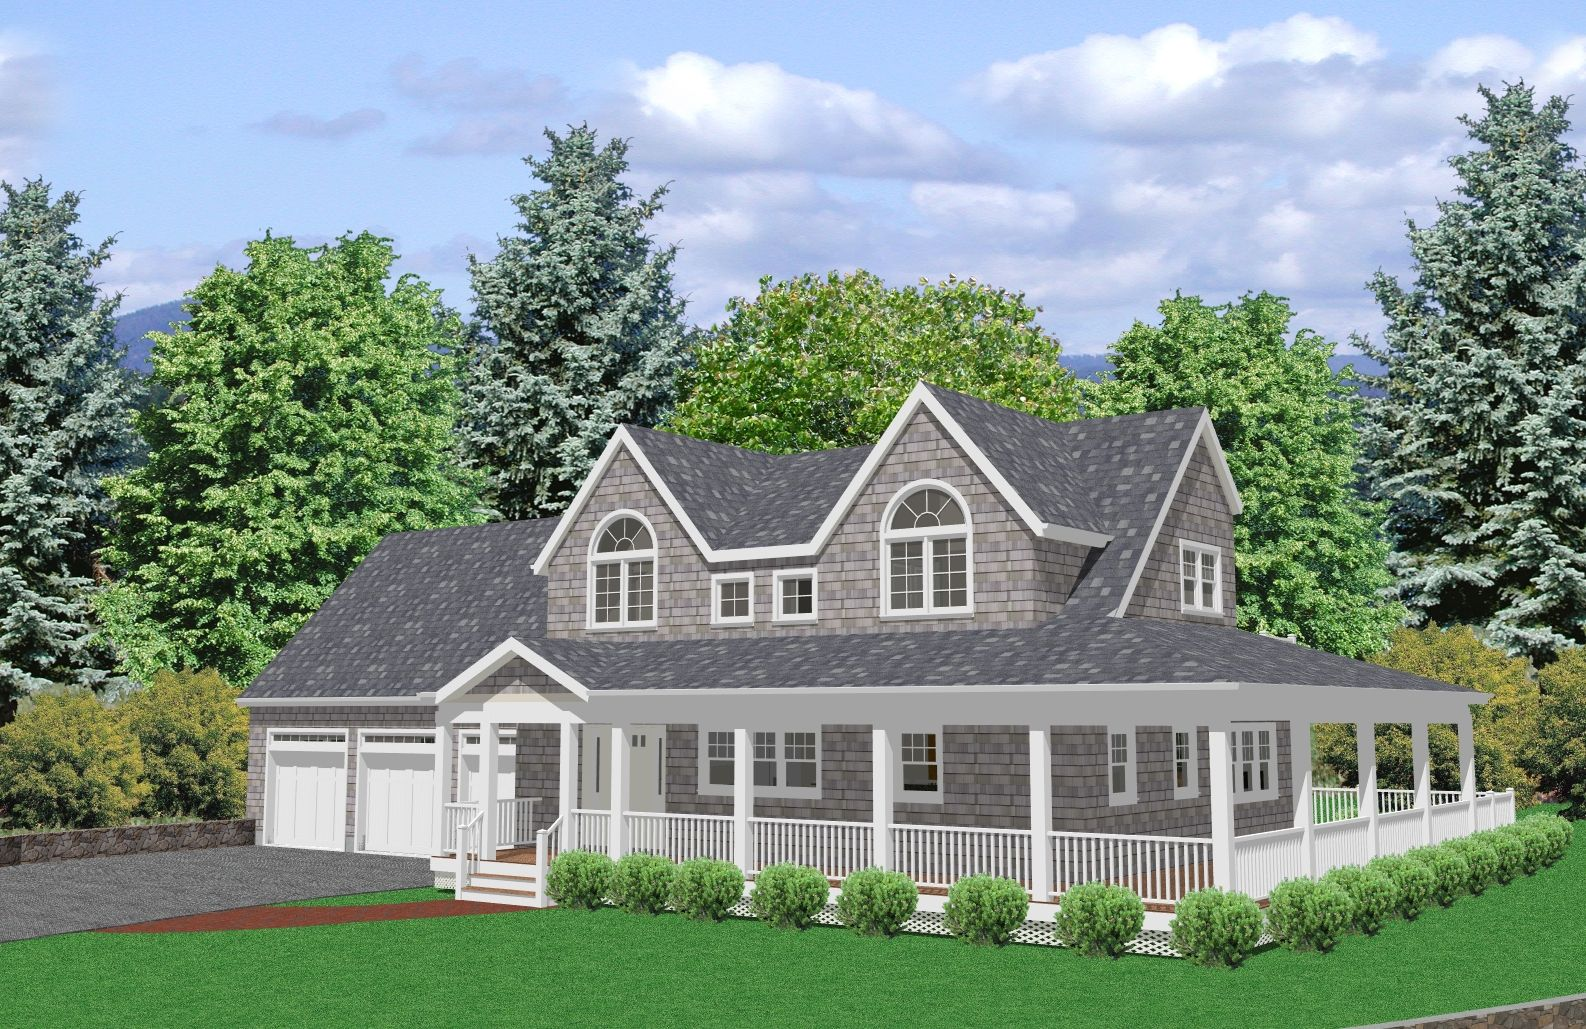 Cape Cod Style House Plans | 2027 Sq/ft 3 Bedroom Cape Cod House Plan With  A Large Bonus Room.